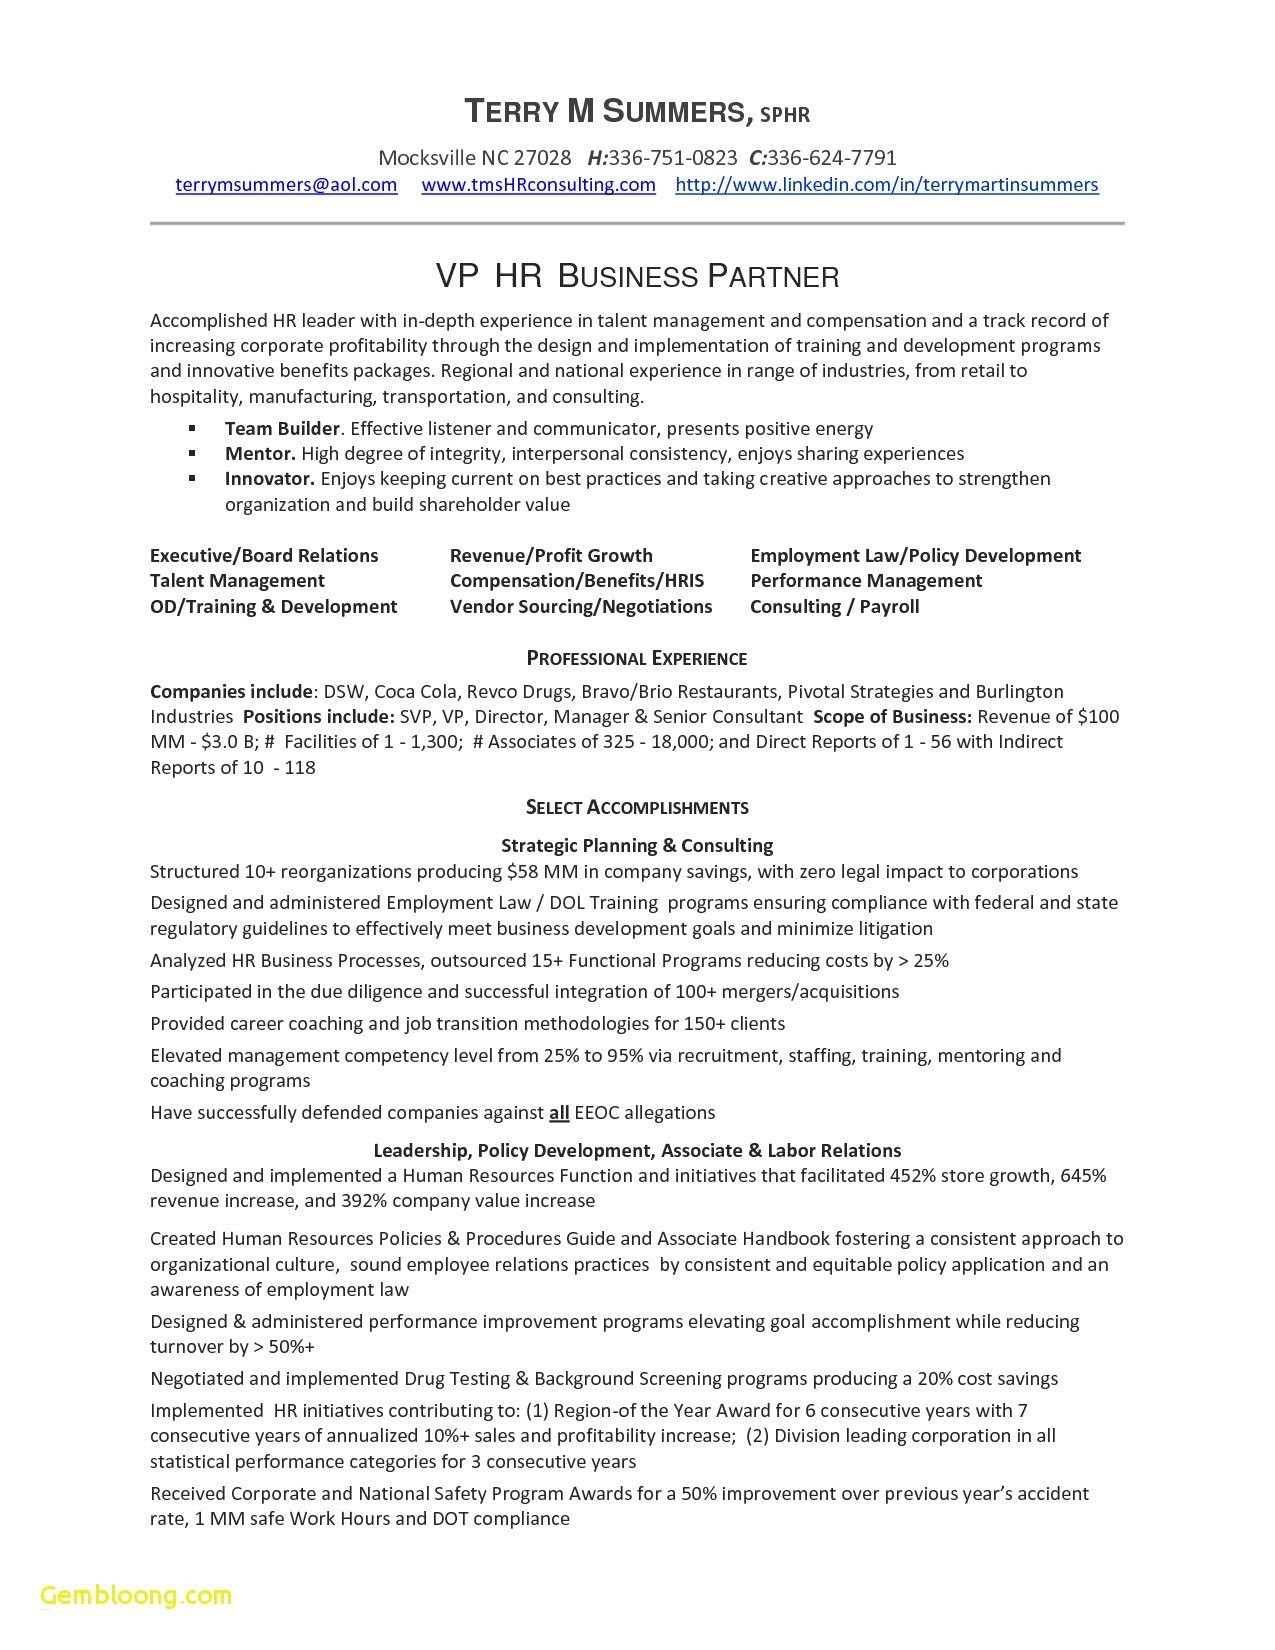 Human Resources Director Resume - Resume for Human Resources Director Reference Human Resources